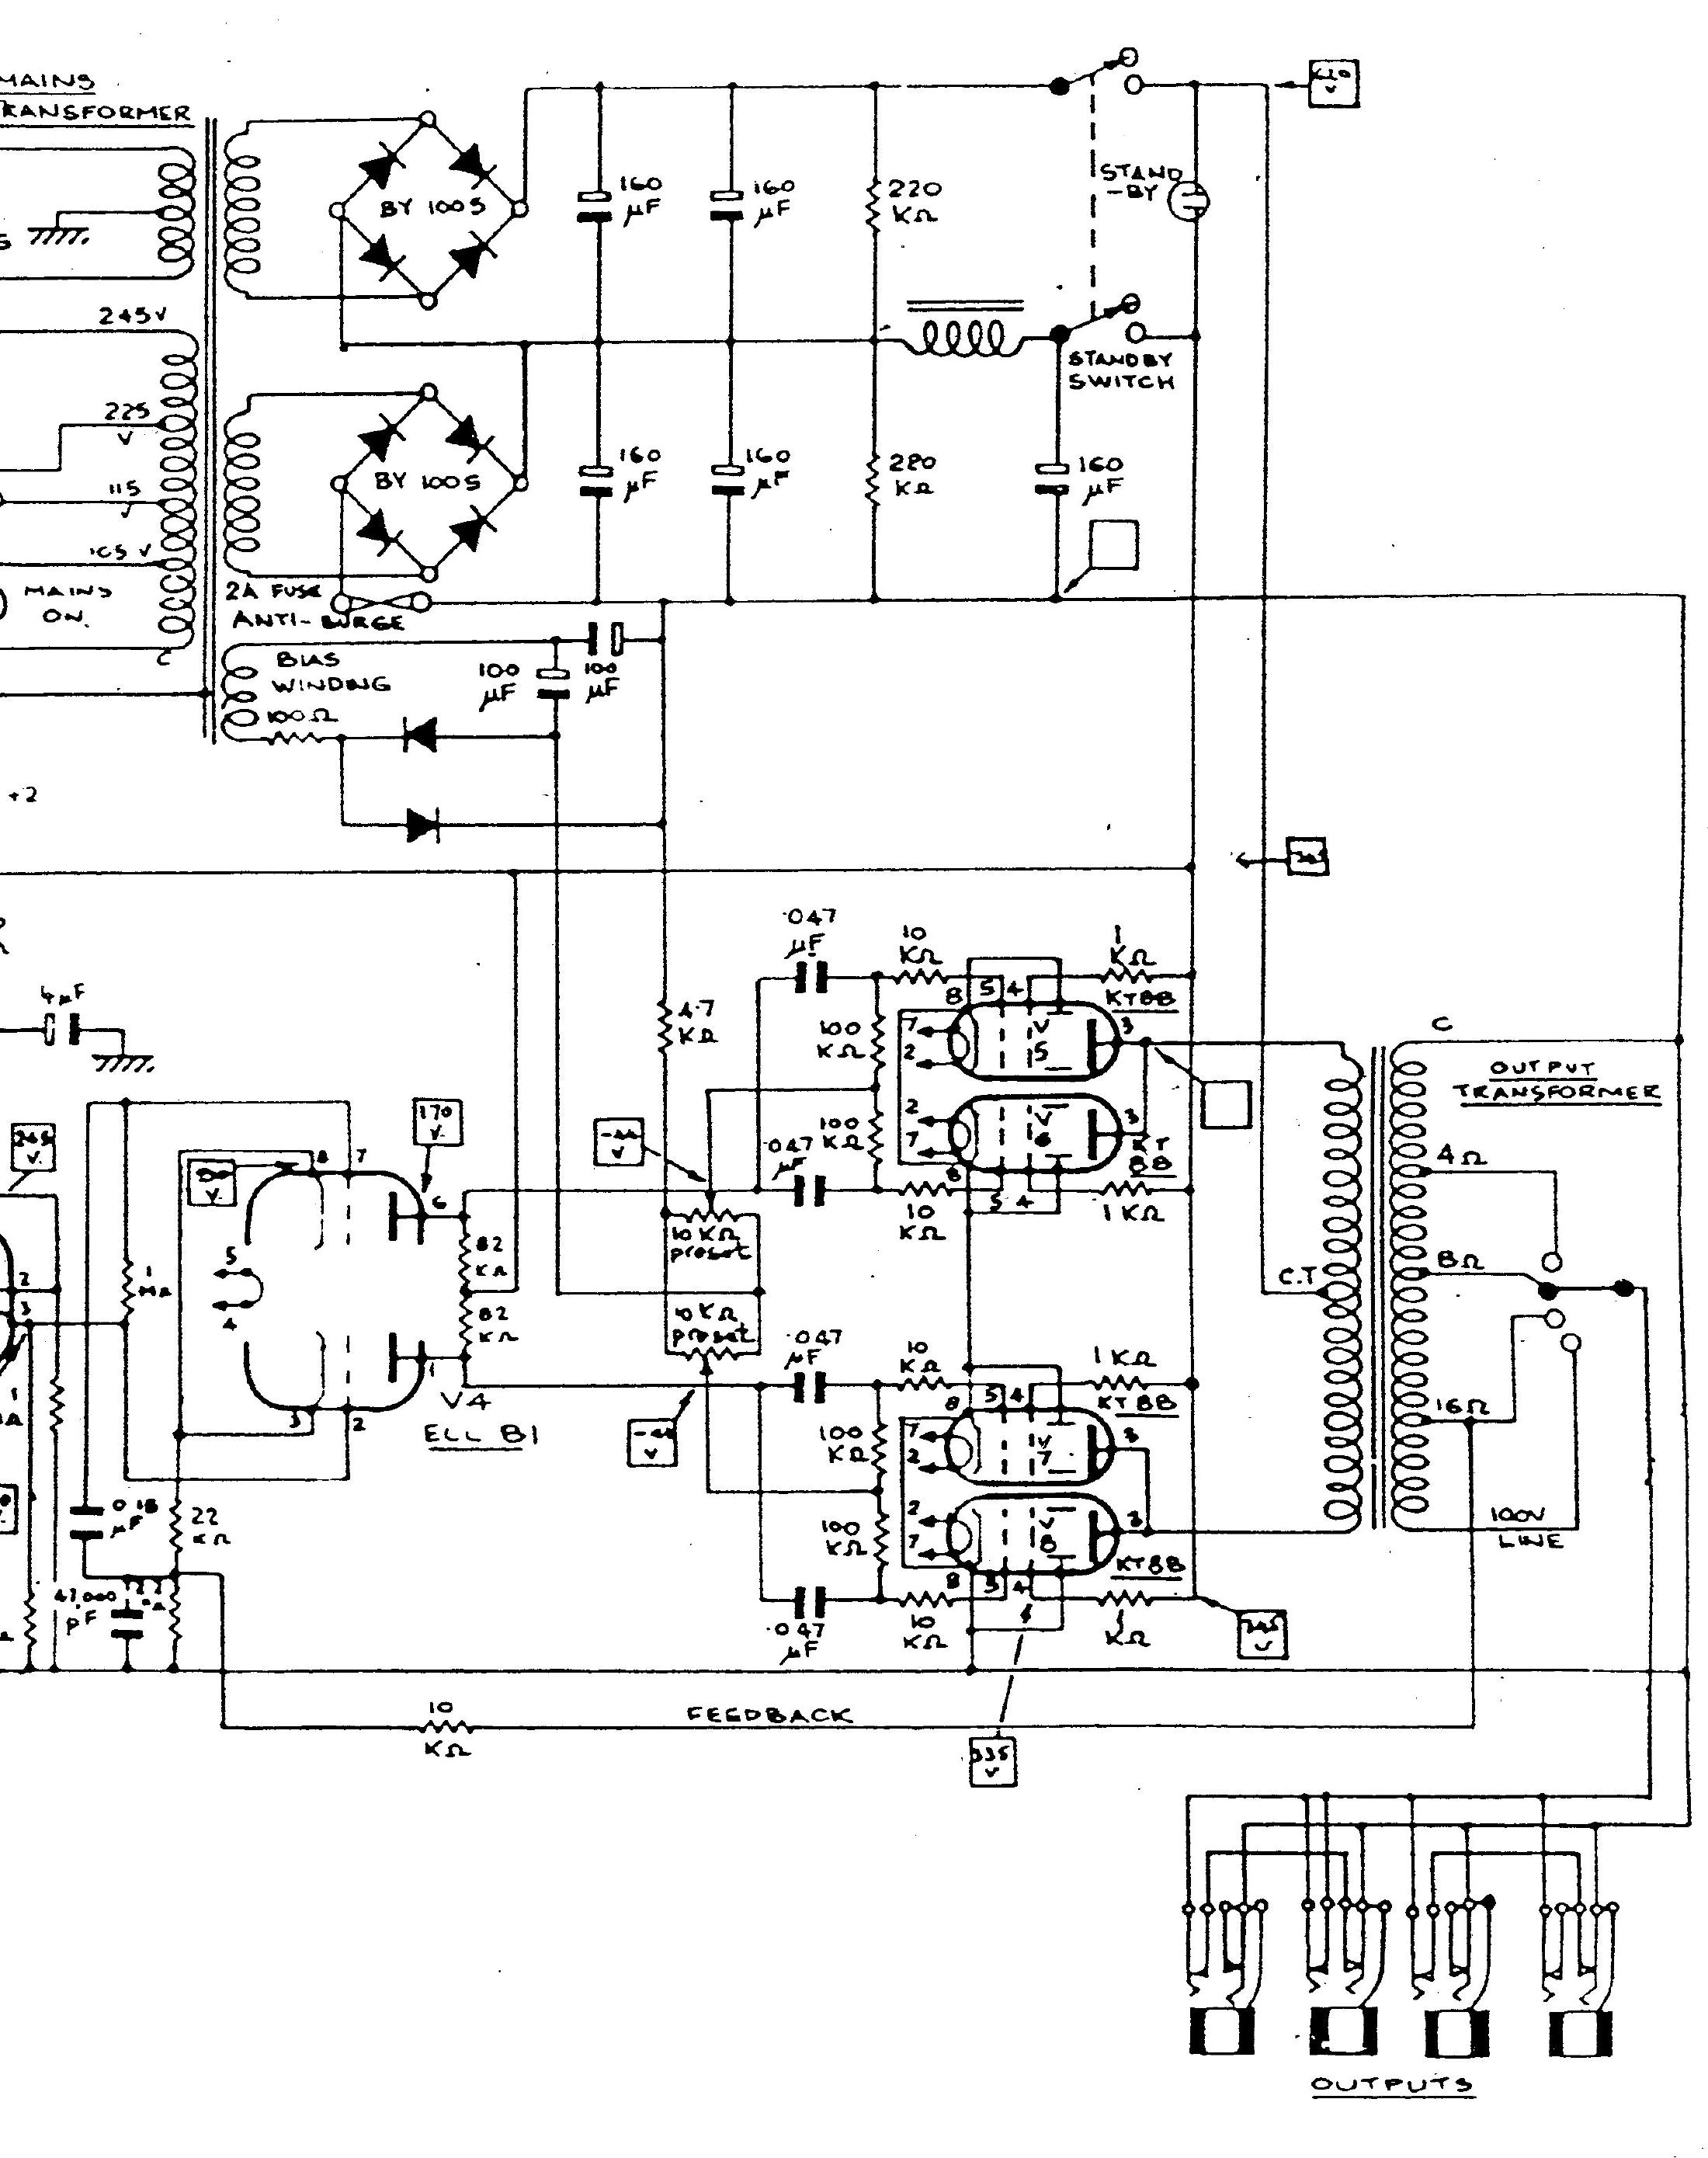 Foot Echo Schematic Drawing At Free For Personal Switch Wiring Diagram 2200x2779 Sc Lb 200 Schemo Right